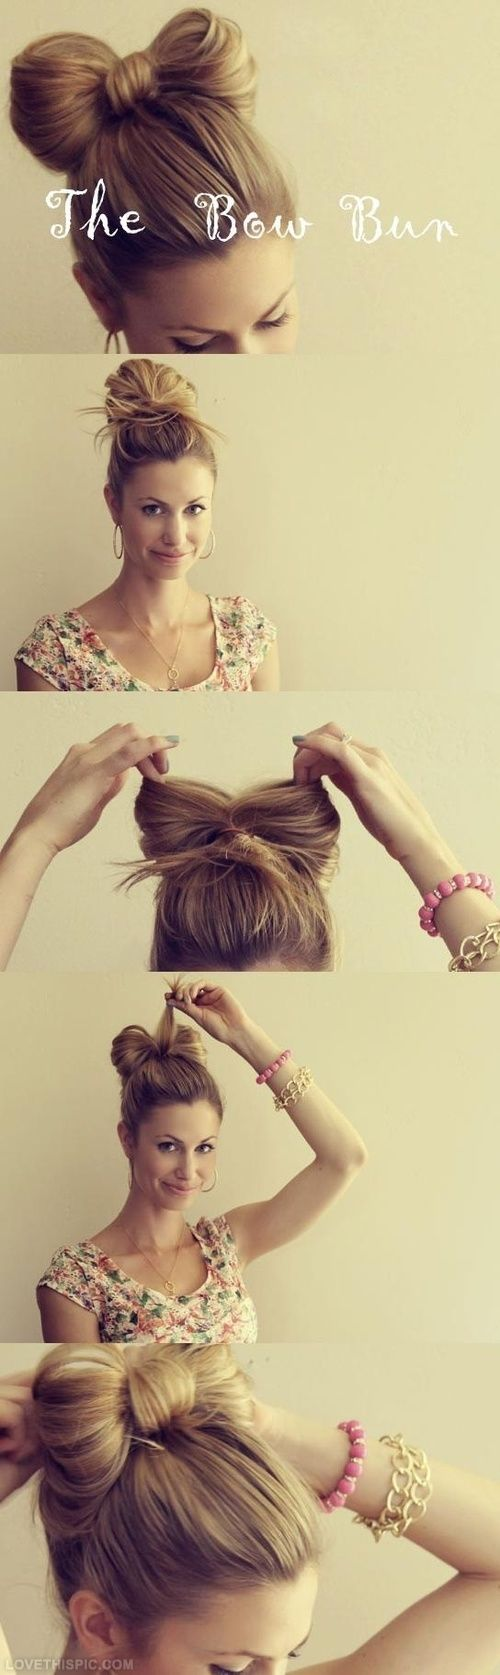 DIY Bow Bun Pictures, Photos, and Images for Facebook, Tumblr, Pinterest, and Twitter